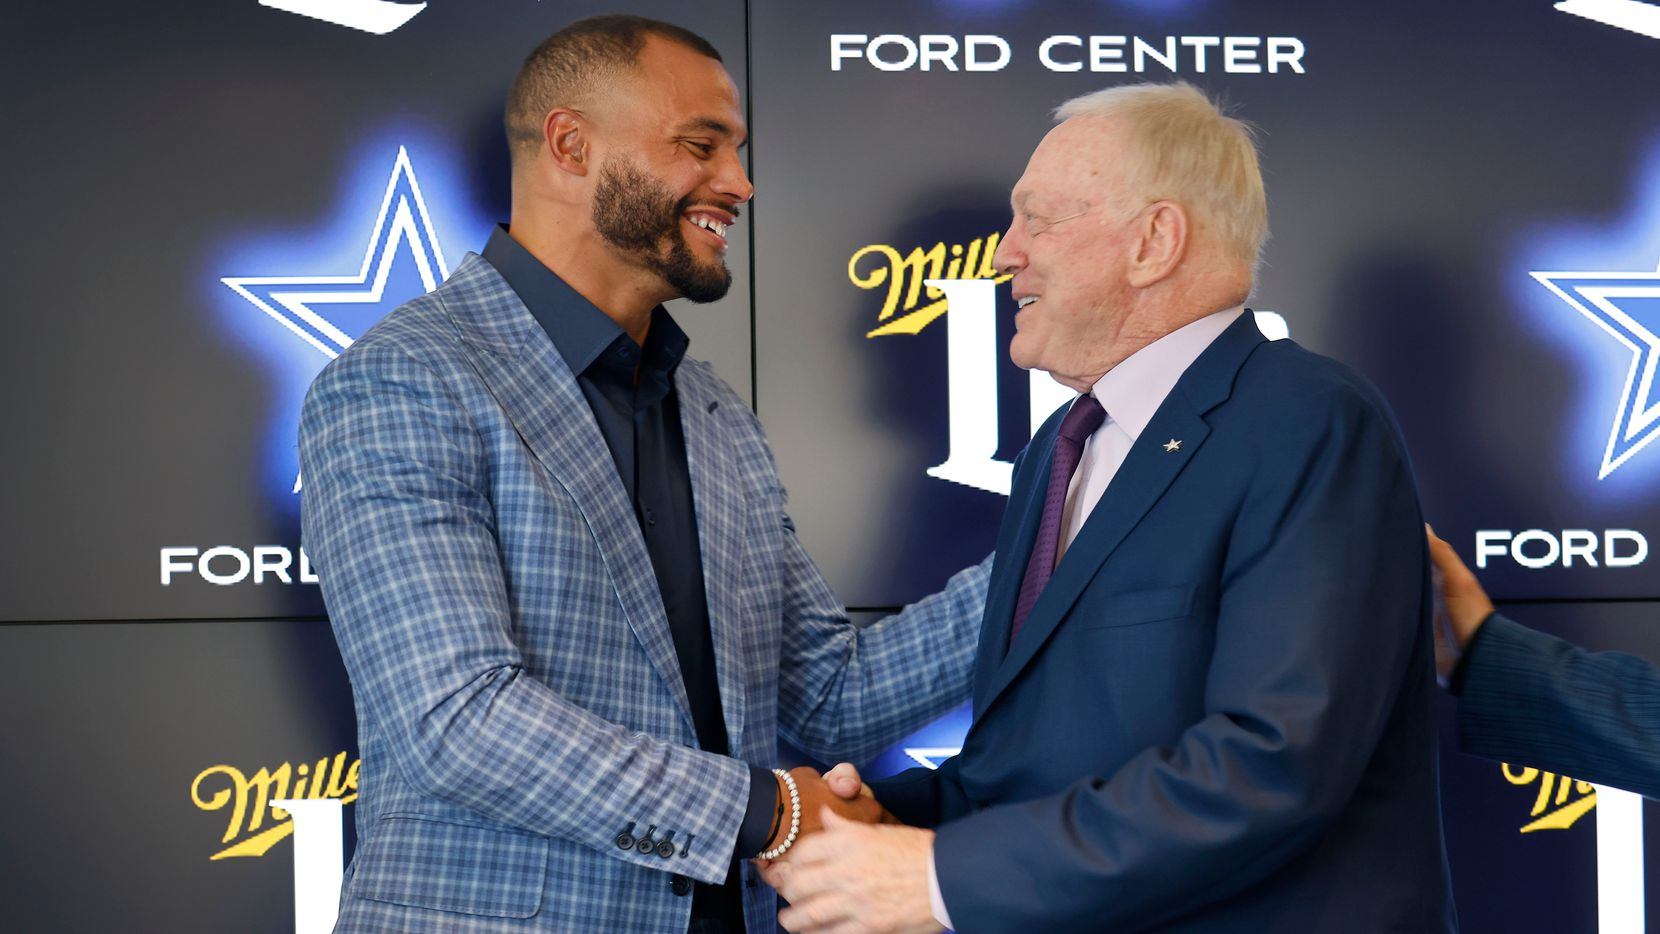 Dallas Cowboys quarterback Dak Prescott (left) and Dallas Cowboys owner Jerry Jones shake hands following a press conference at The Star in Frisco, Texas, Wednesday, March 10, 2021. Dak spoke about his freshly signed 4-year, $160 million contract with the team.